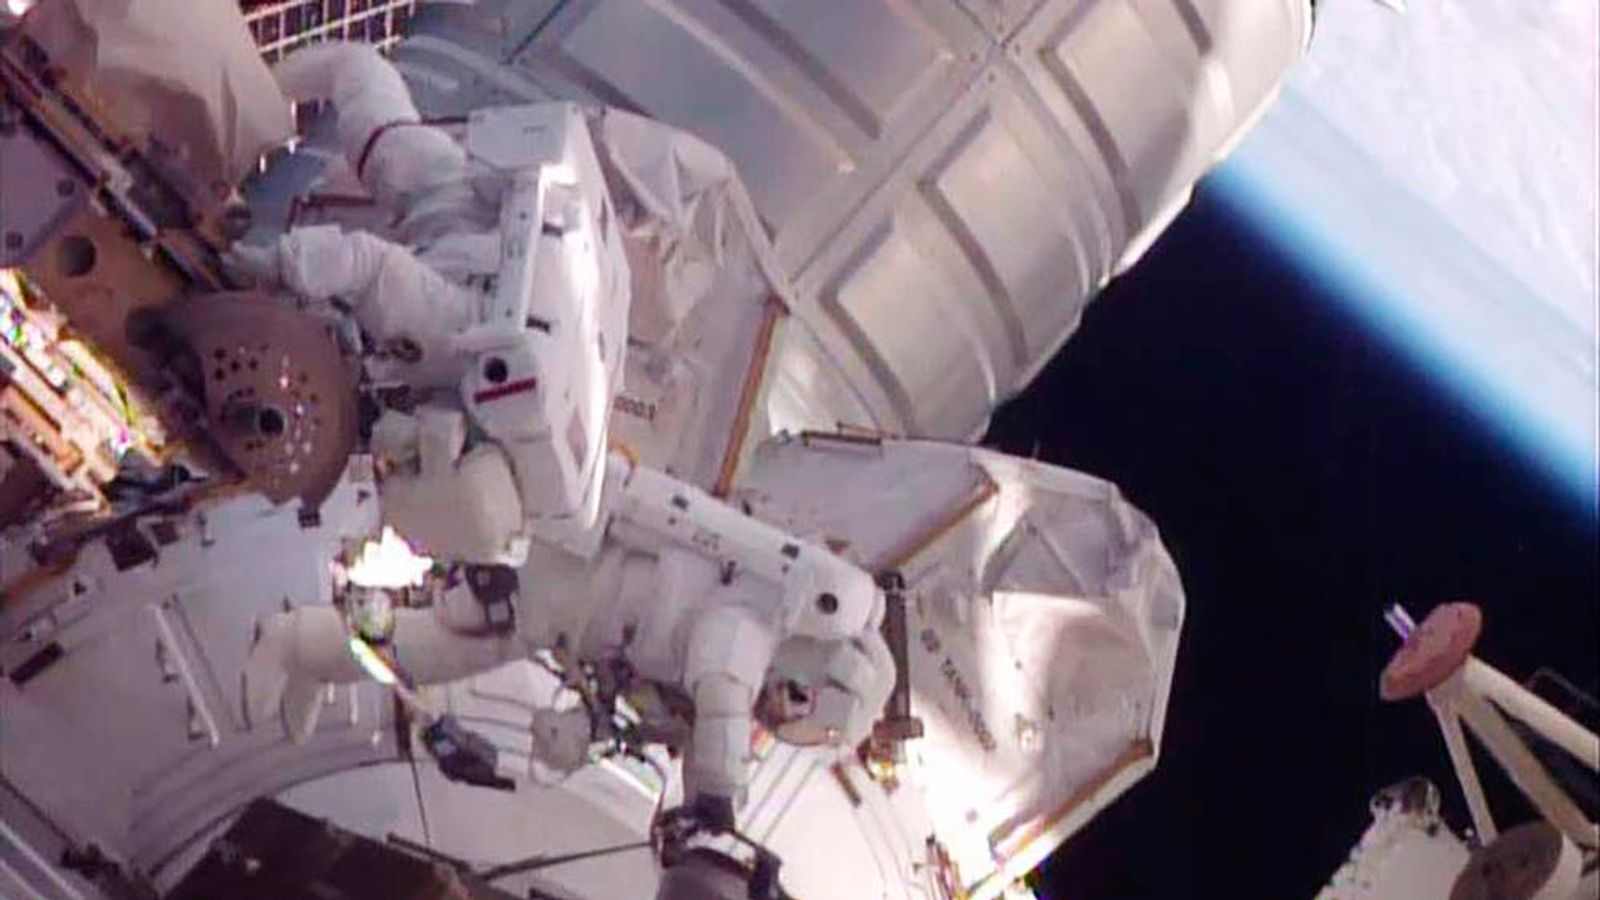 NASA astronauts work to move a stalled robotic transporter on International Space Station in this still image from NASA TV.